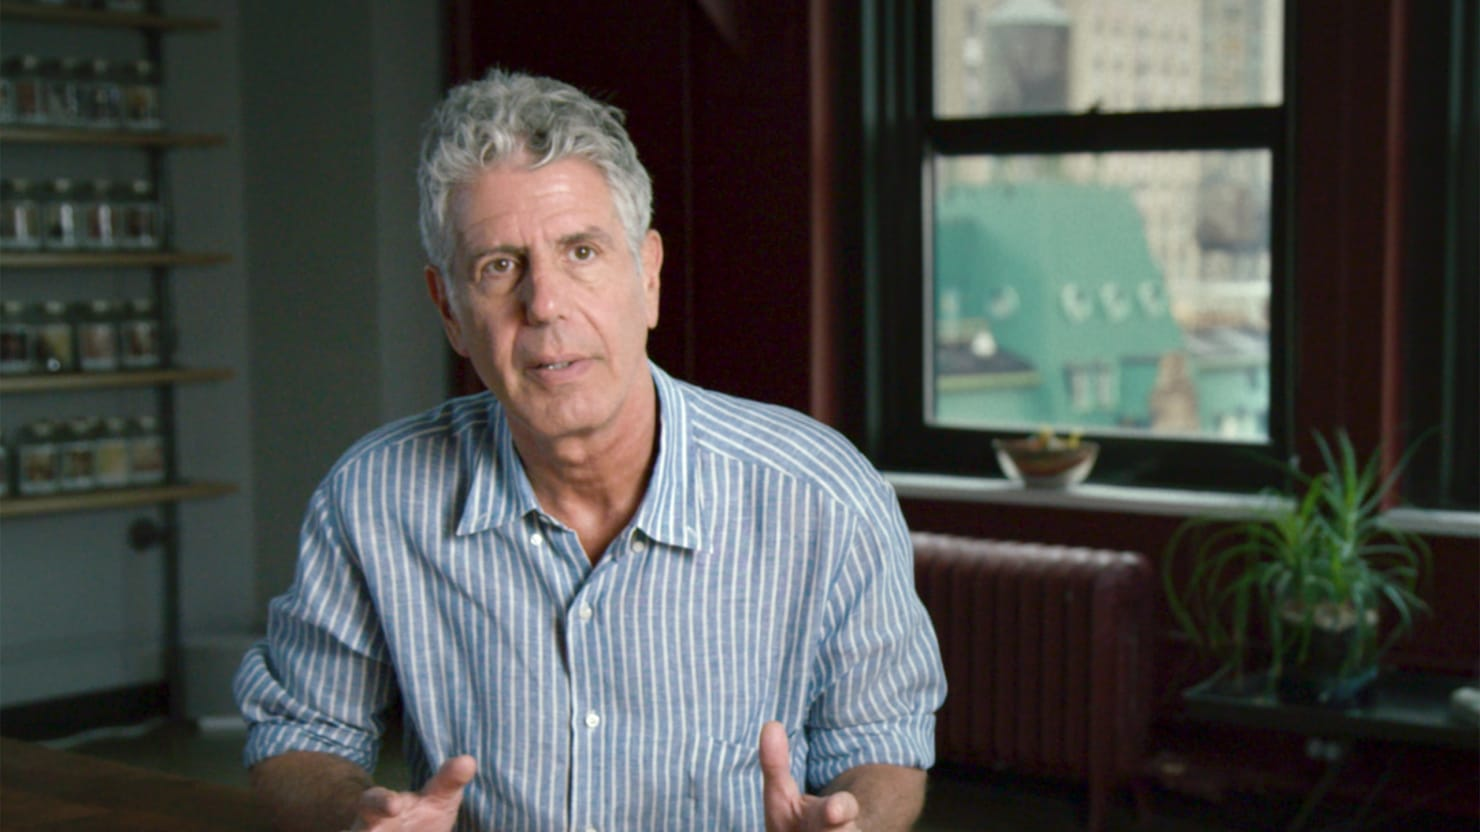 Anthony bourdain sets the record straight for R kitchen confidential